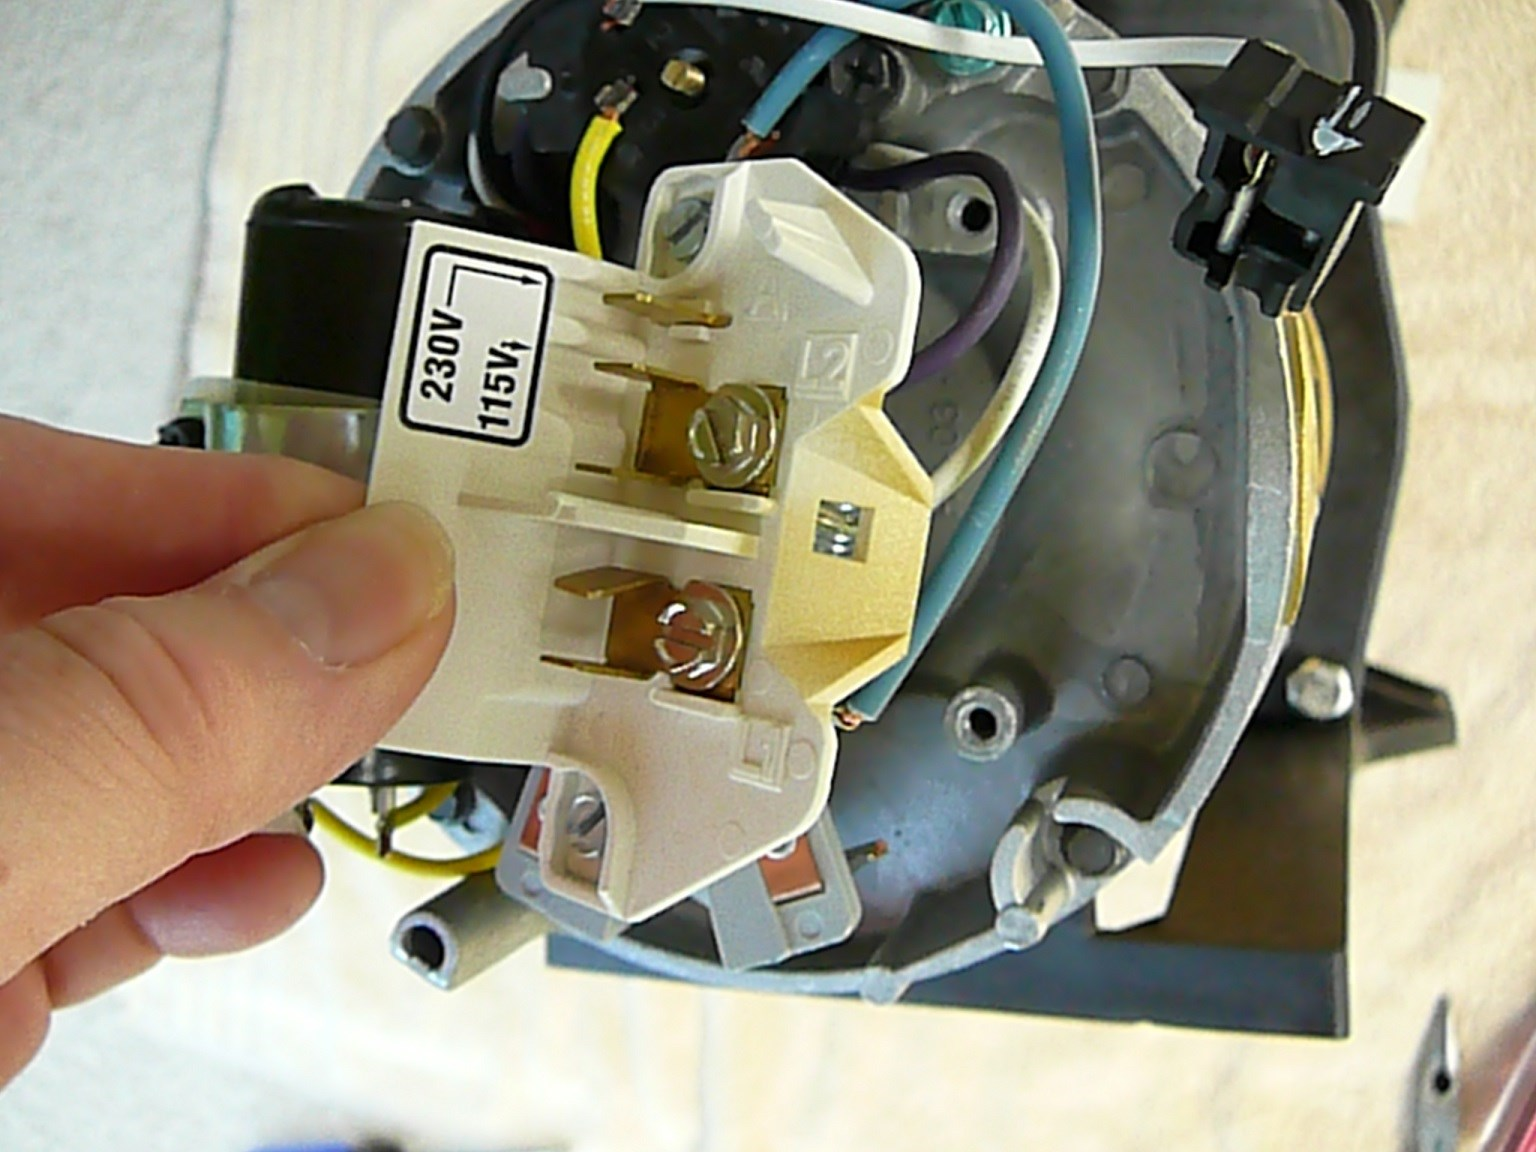 How To Replace The Terminal Board On An Ao Smith Motor